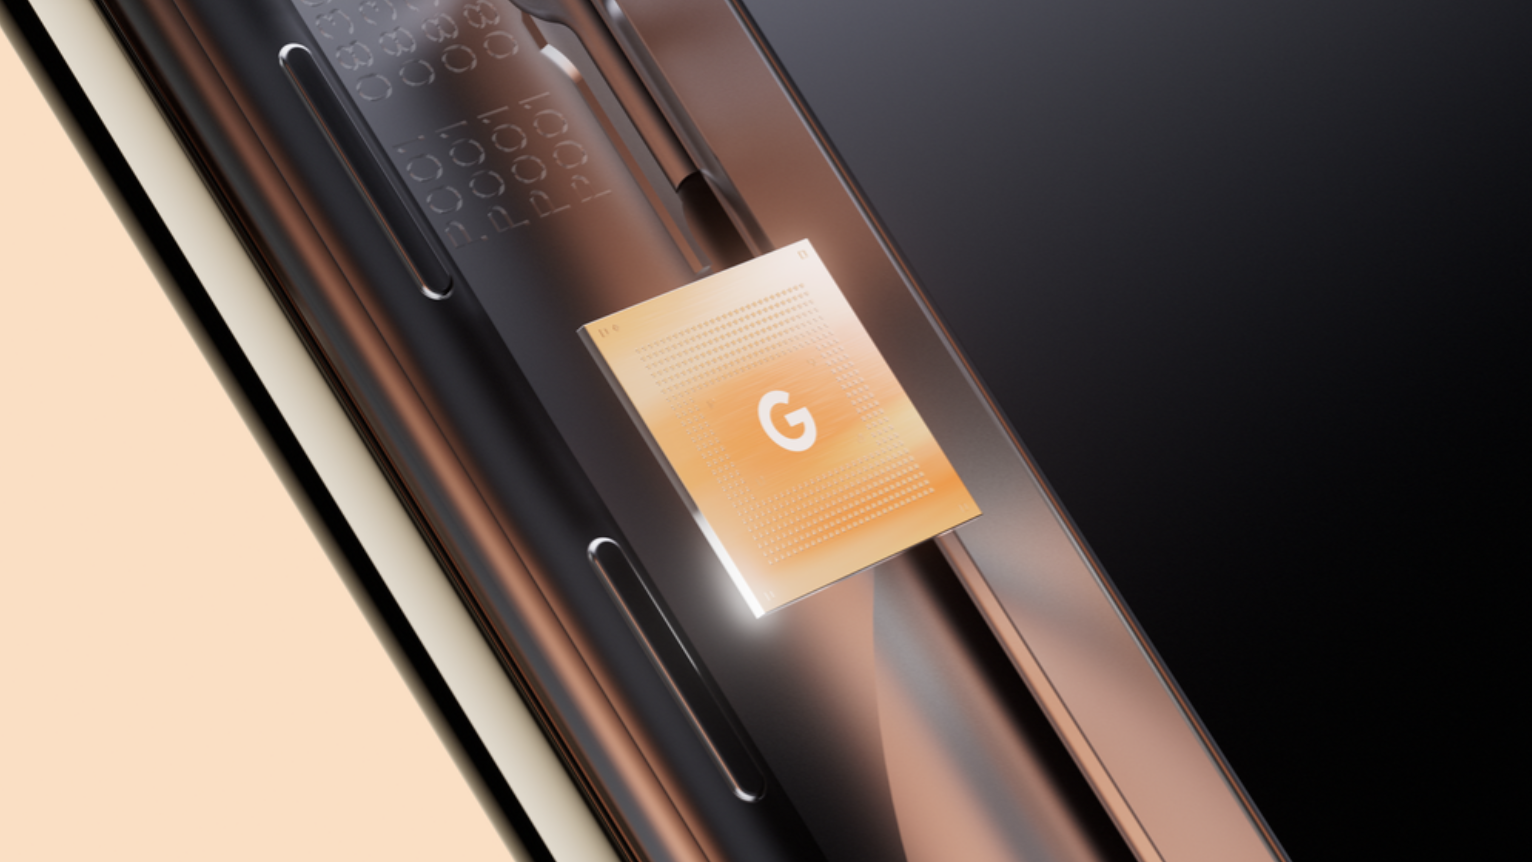 Google wants to use its processors more.